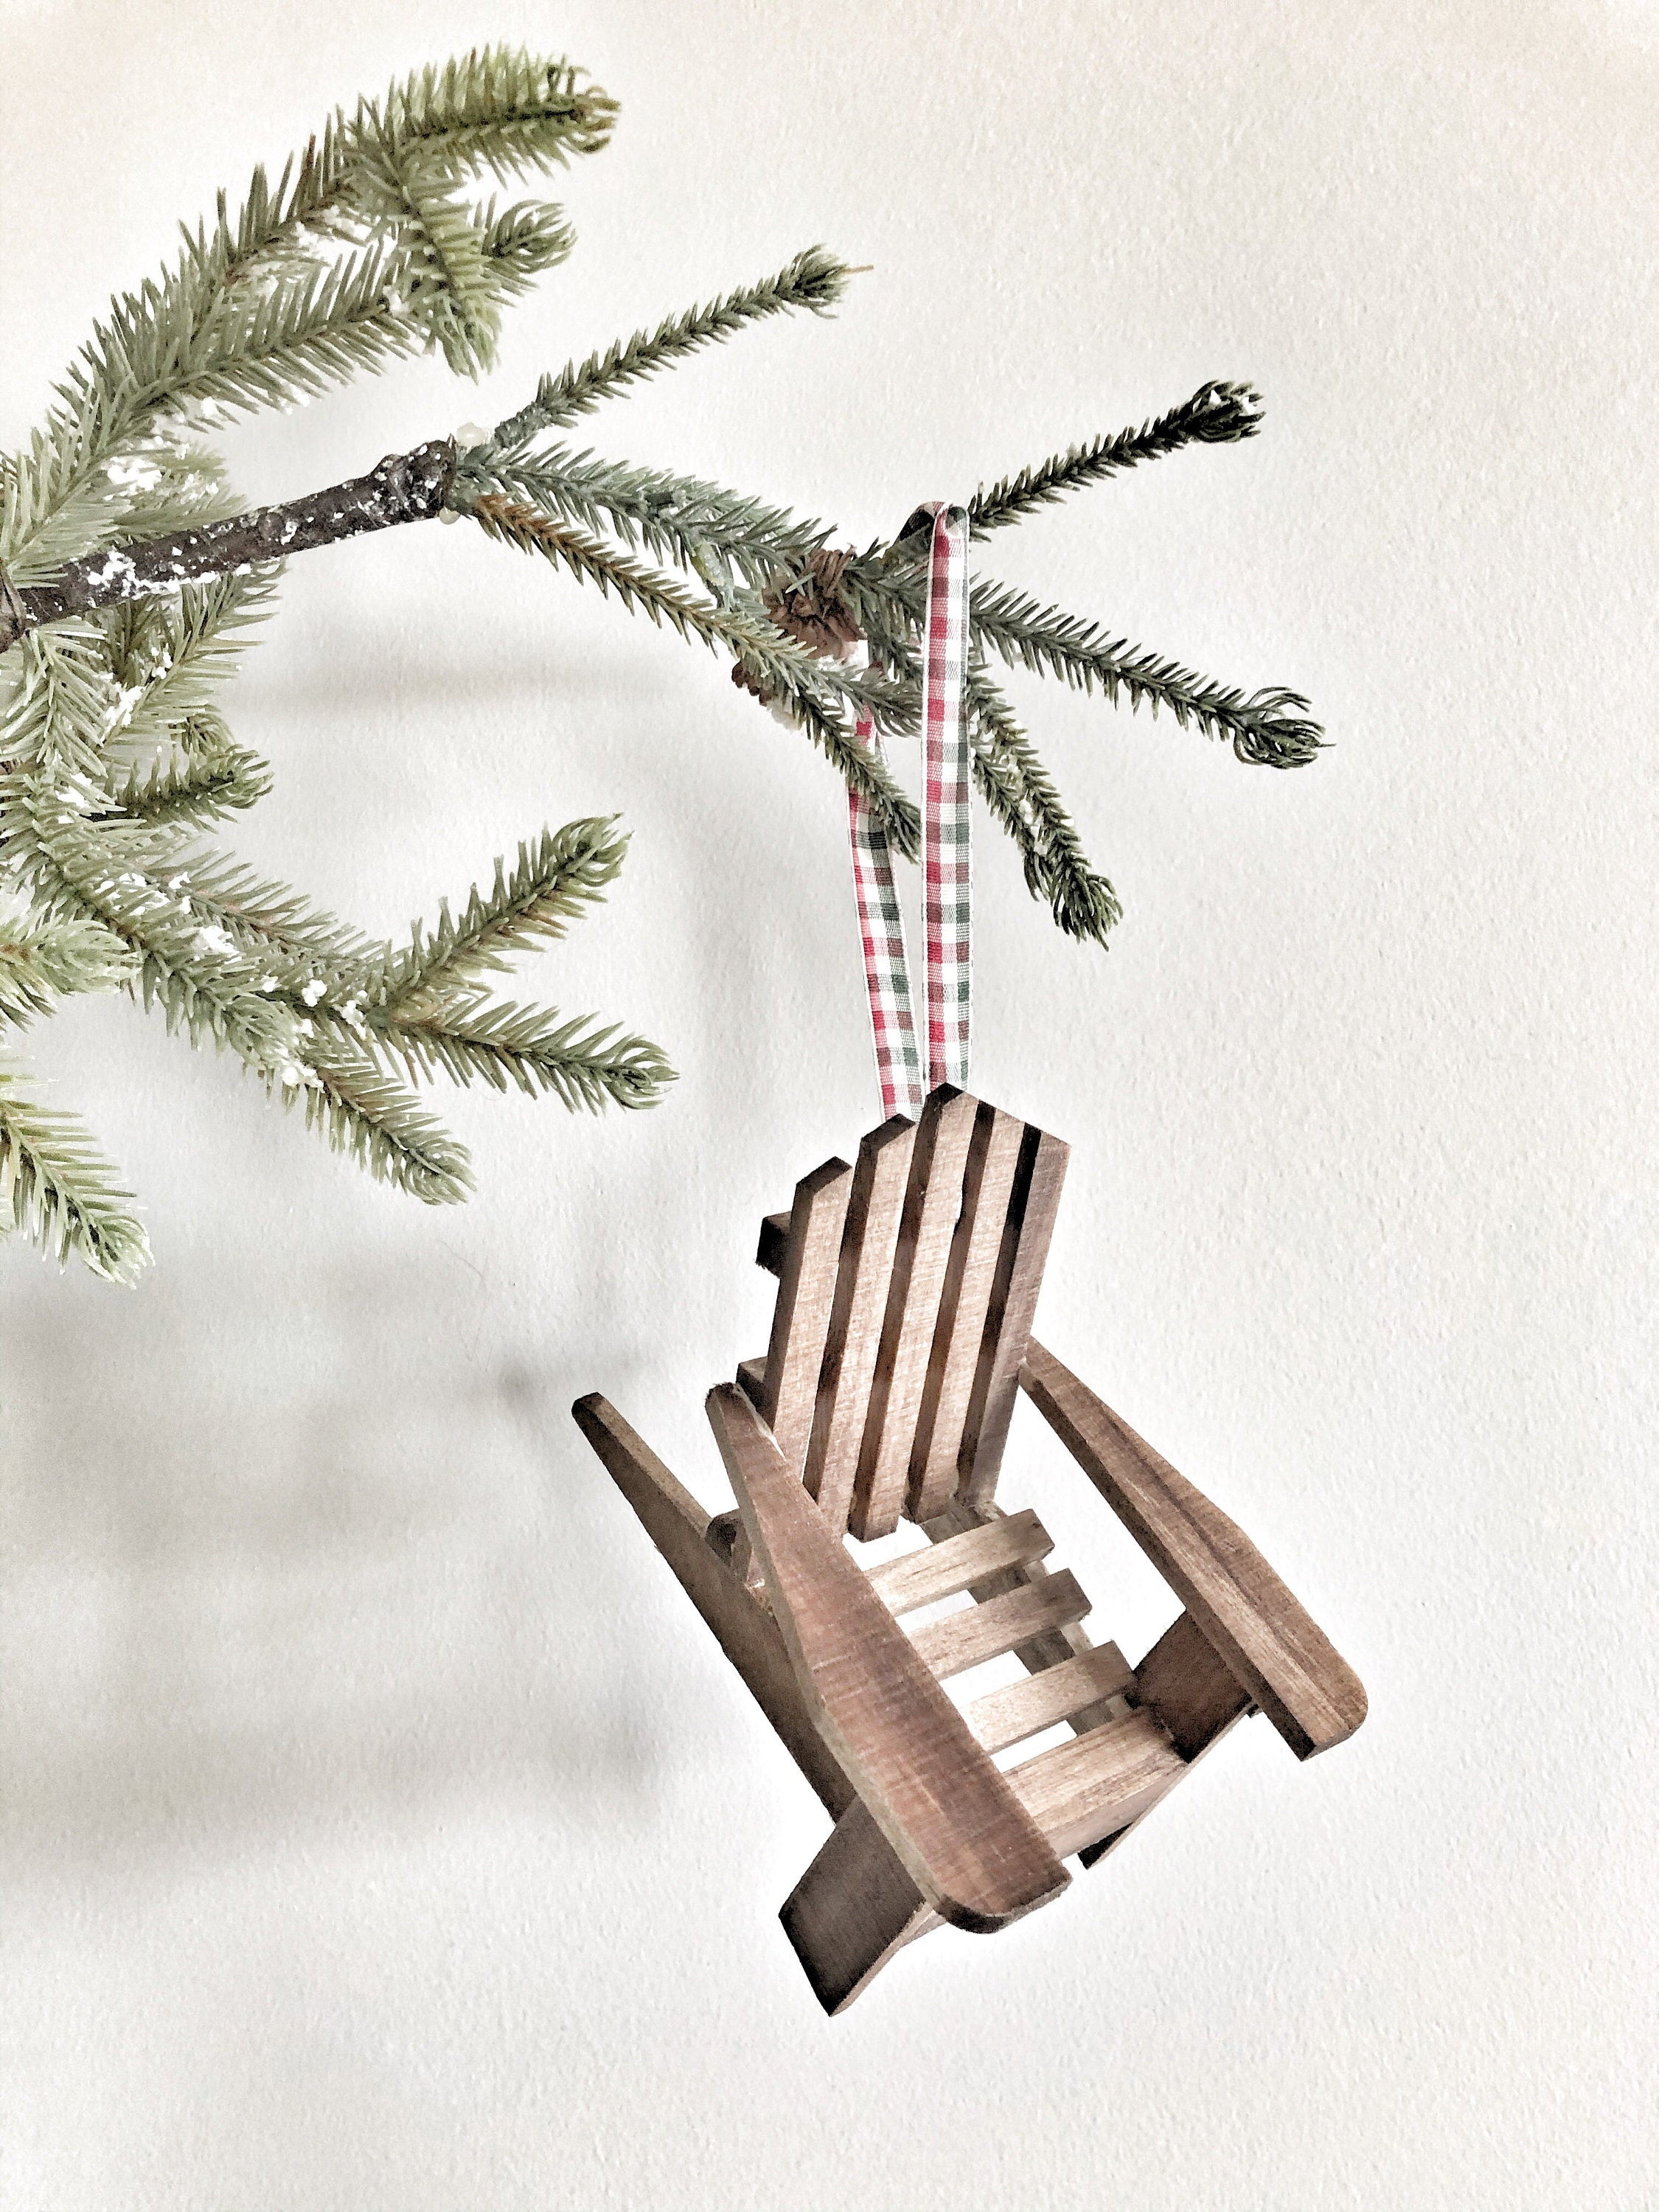 Wooden Christmas Tree Ornament Adirondack Chair Ornament Mini Wood Chair Ornament Cabin Tree Decoration Stocking Decoration Cabin Chair